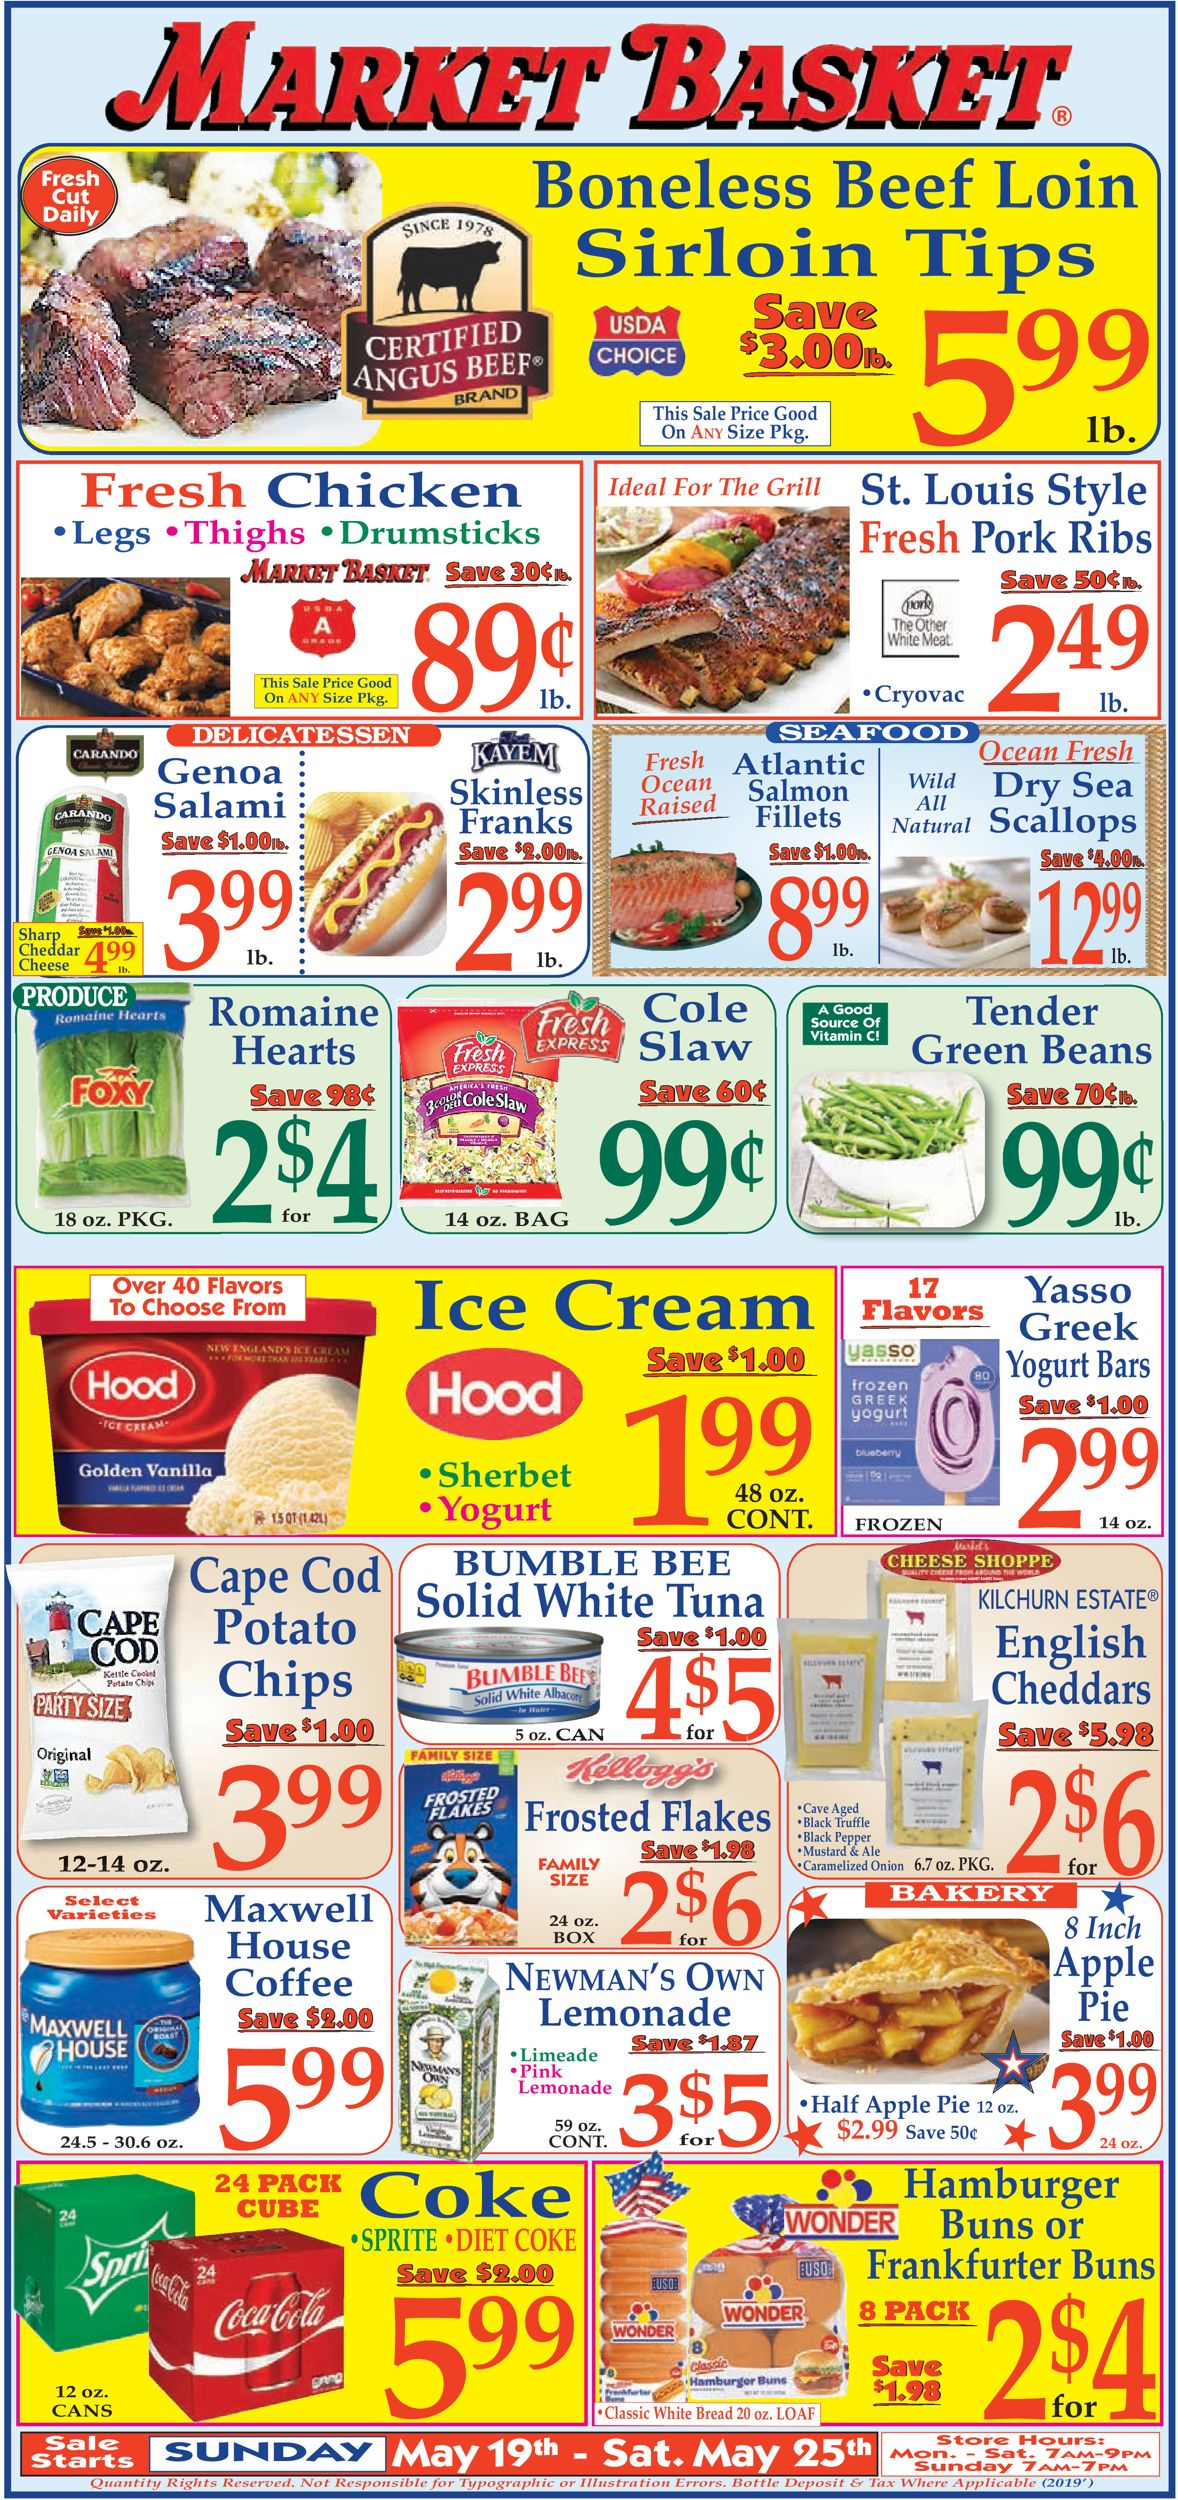 Market Basket Current weekly ad 05/19 - 05/25/2019 - frequent-ads.com